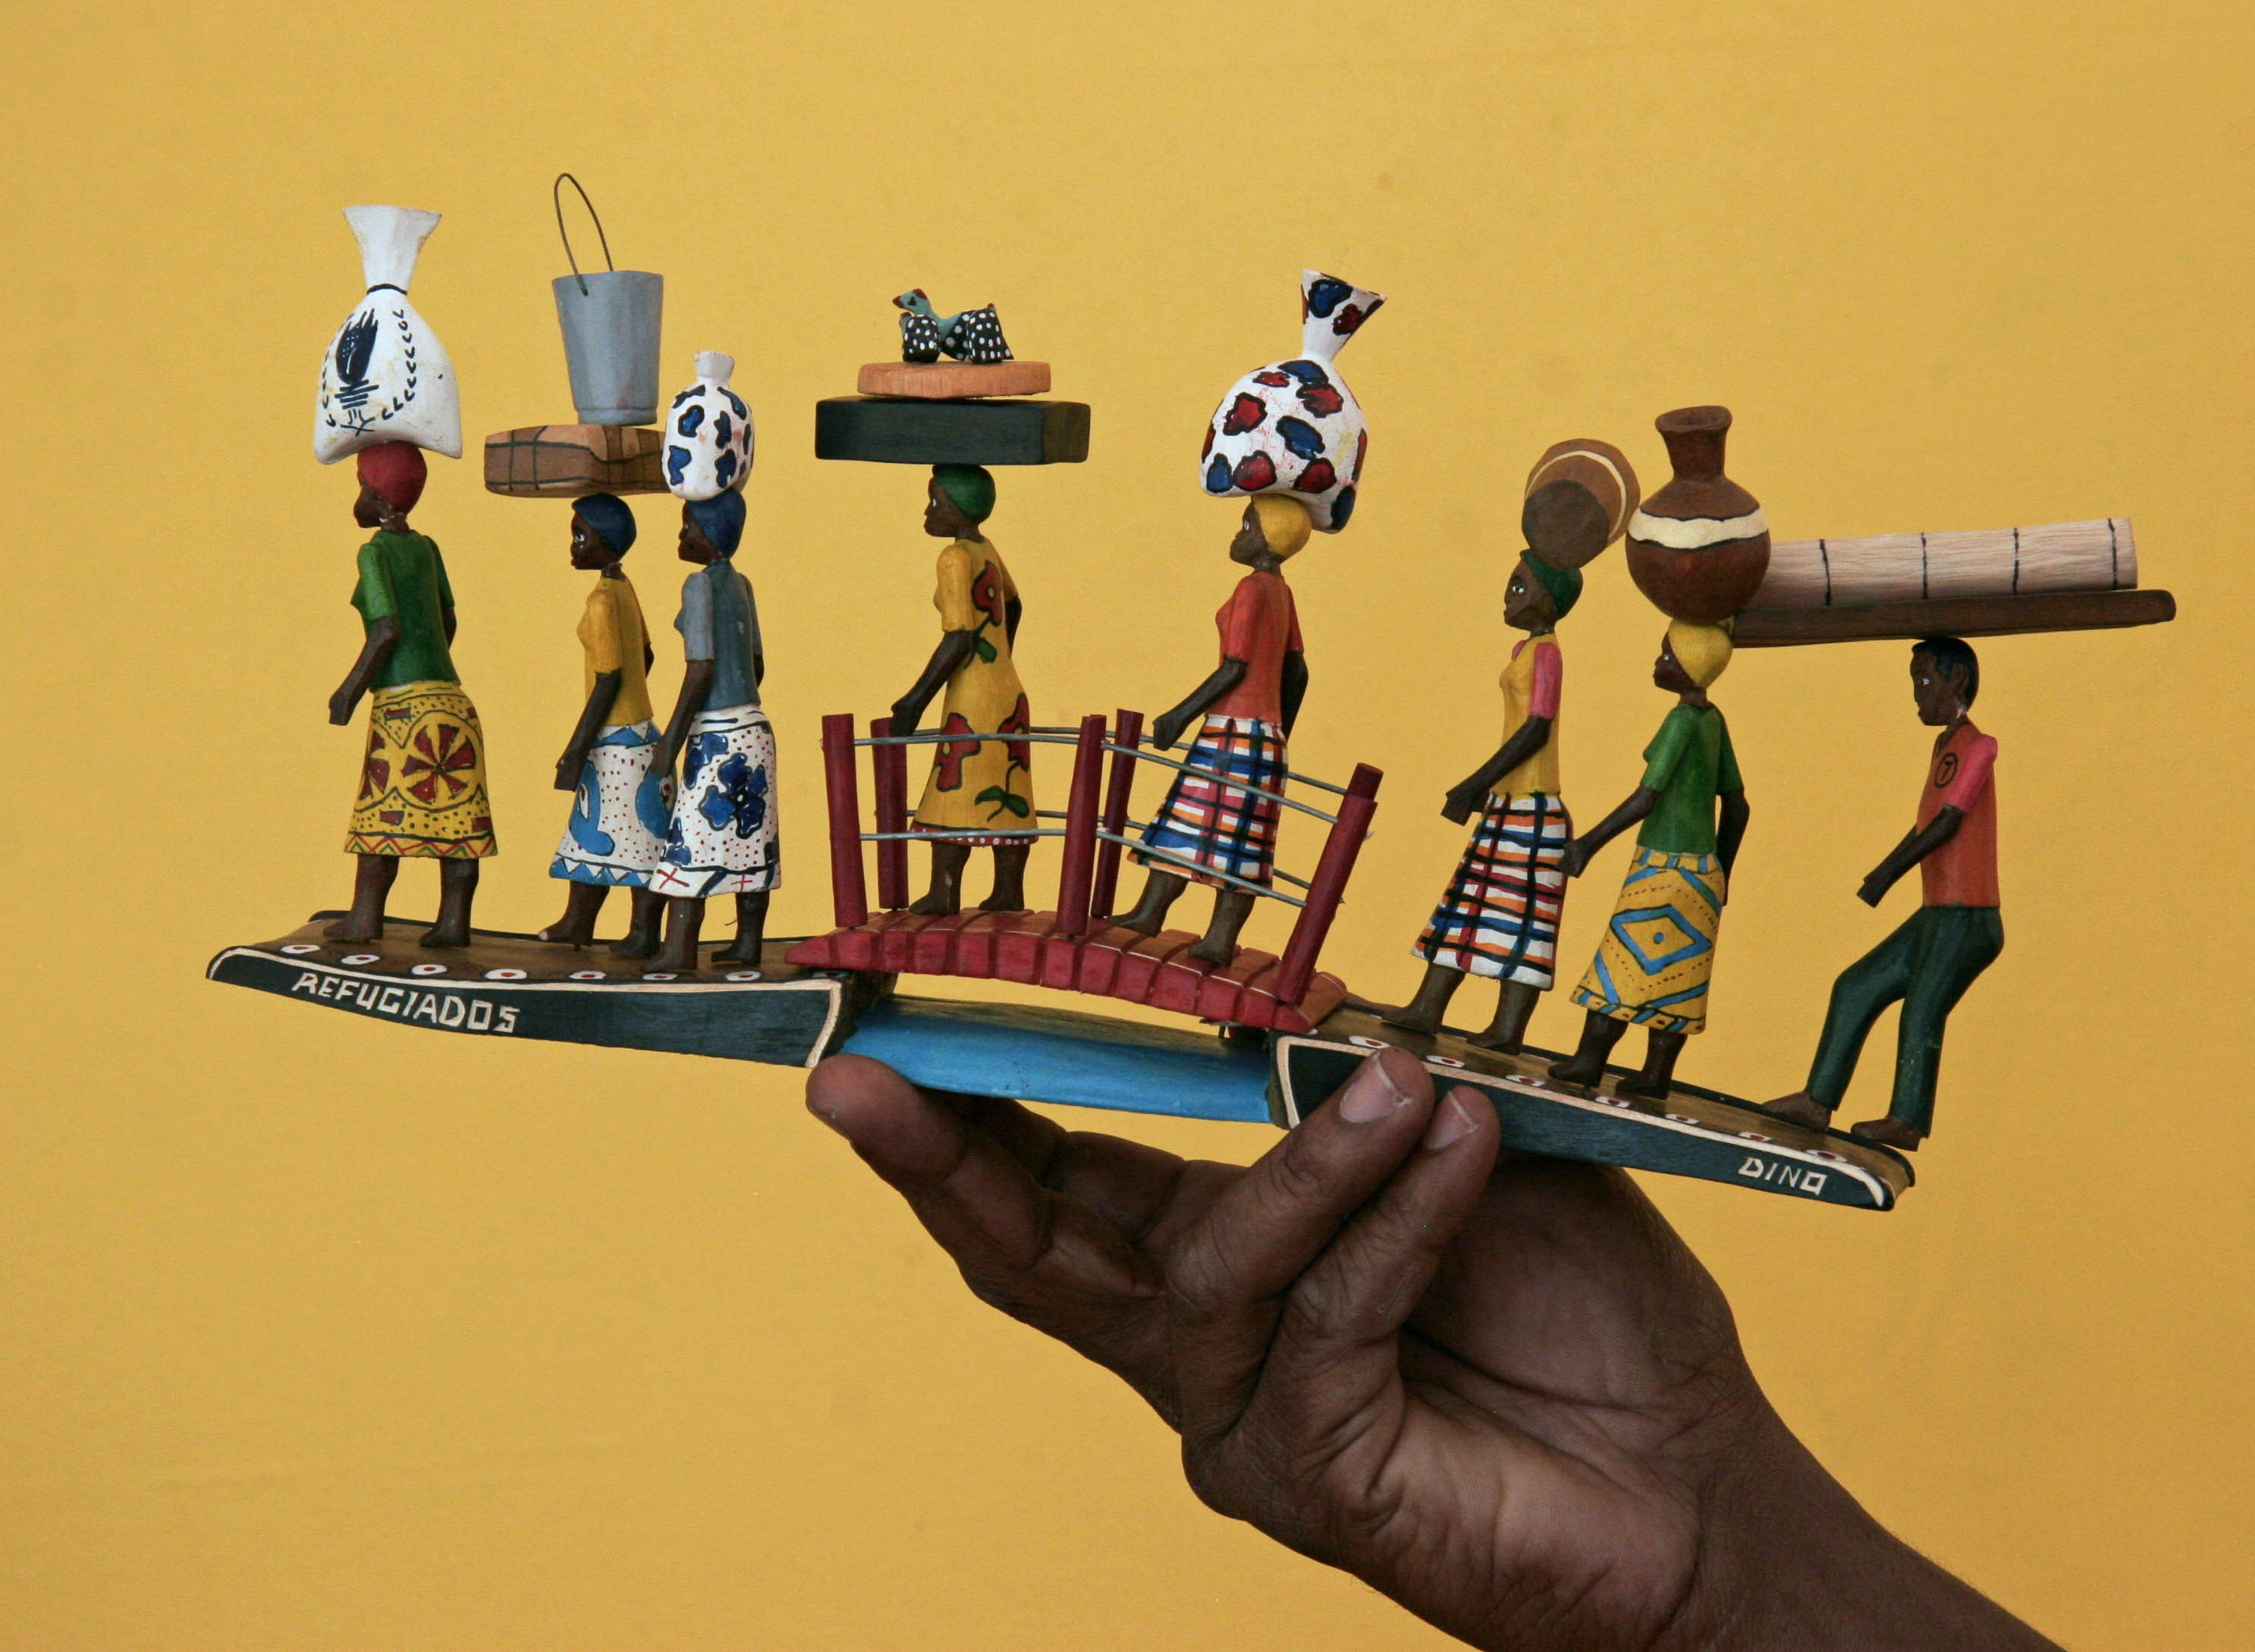 Caption: Refugiados (Refugees), 2013 by Camordino Mustafá Jethá (São Damanso, Maputo, Mozambique) Photo by Laura Marcus Green, courtesy of the Museum of International Folk Art